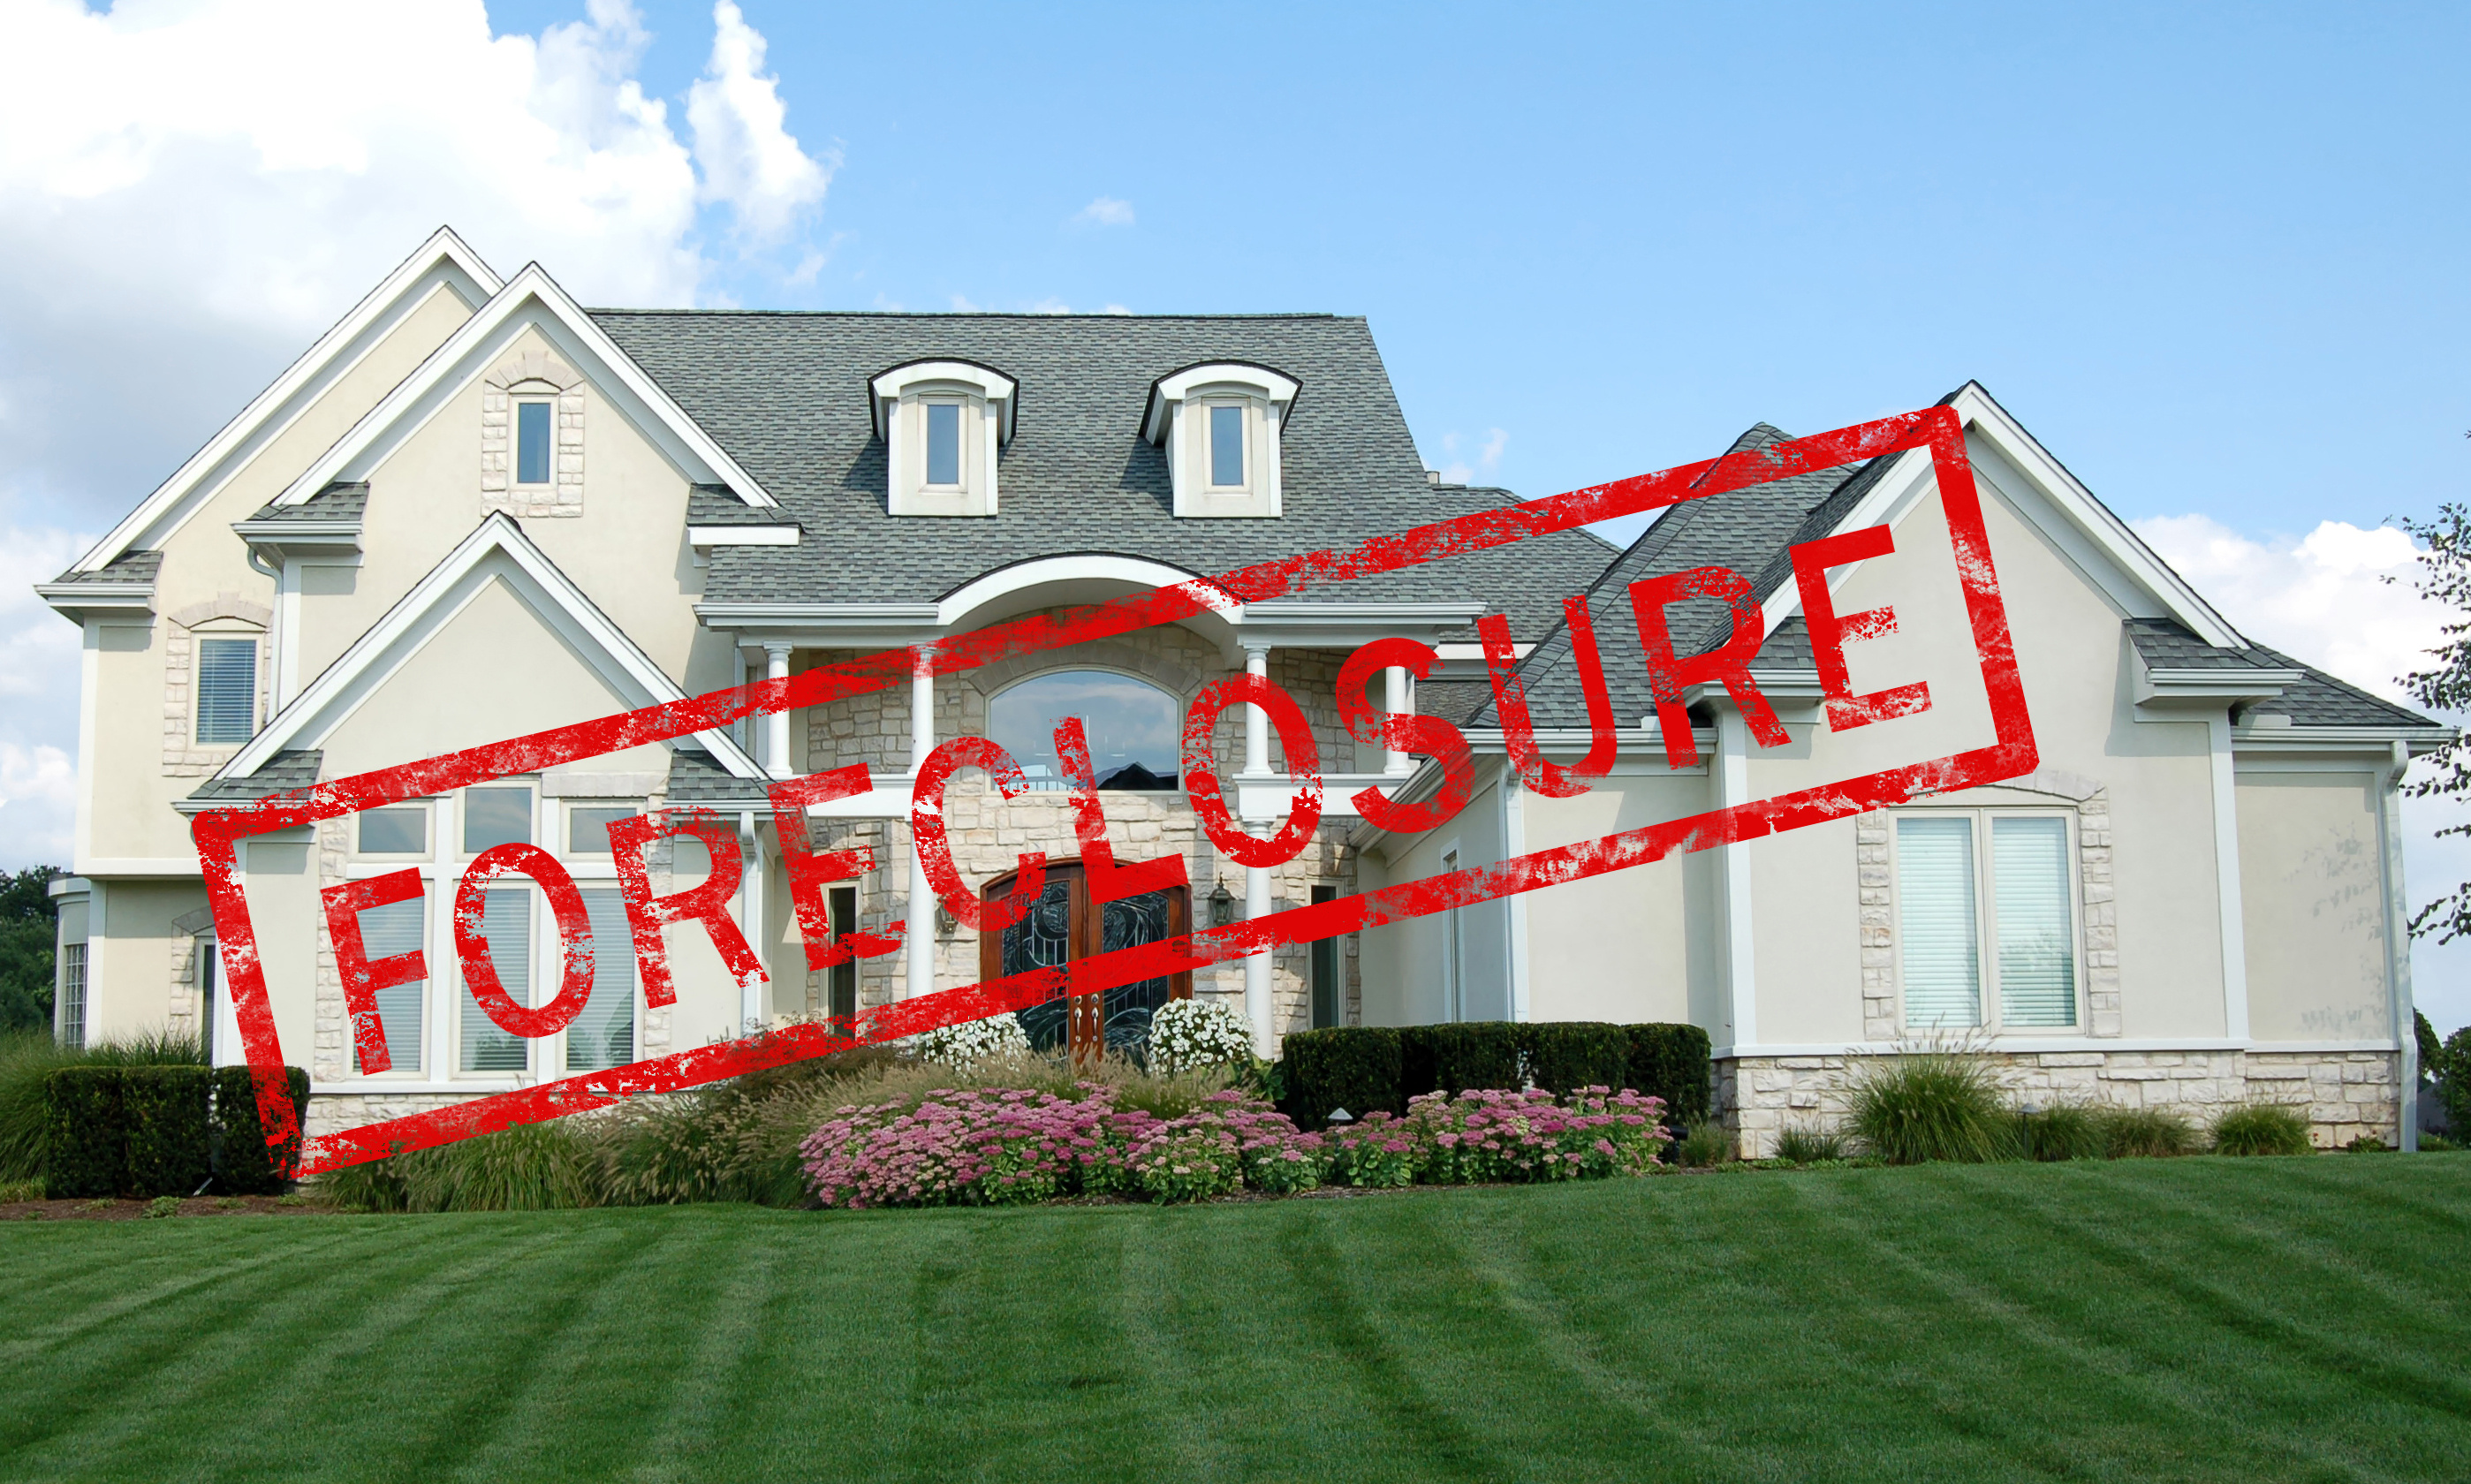 Call Accurate Appraisals to order appraisals regarding none foreclosures